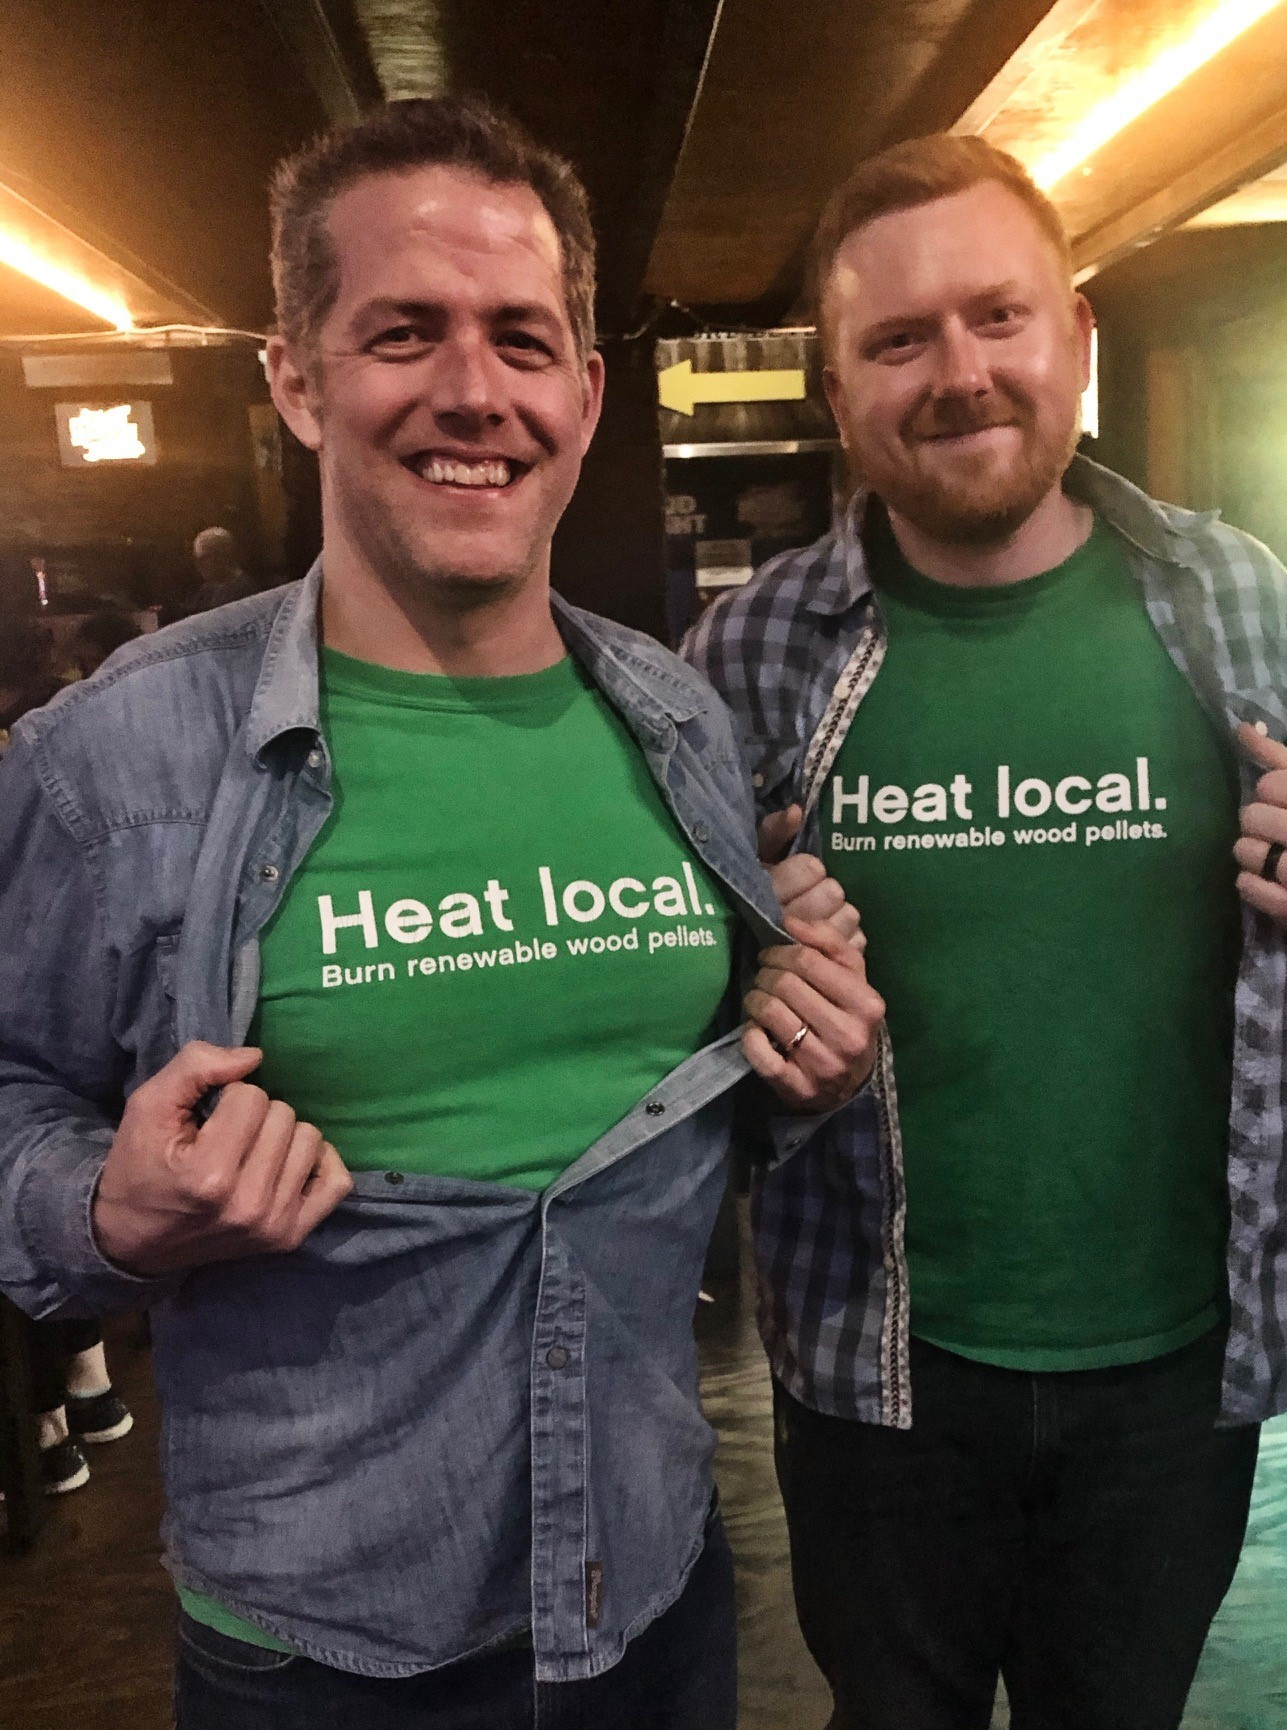 Photo Caption: Tim Portz and Kenny Lisle, PFI board vice-chairman (Lignetics), spread the wood heat word downtown Nashville, following the International Biomass Conference & Expo.